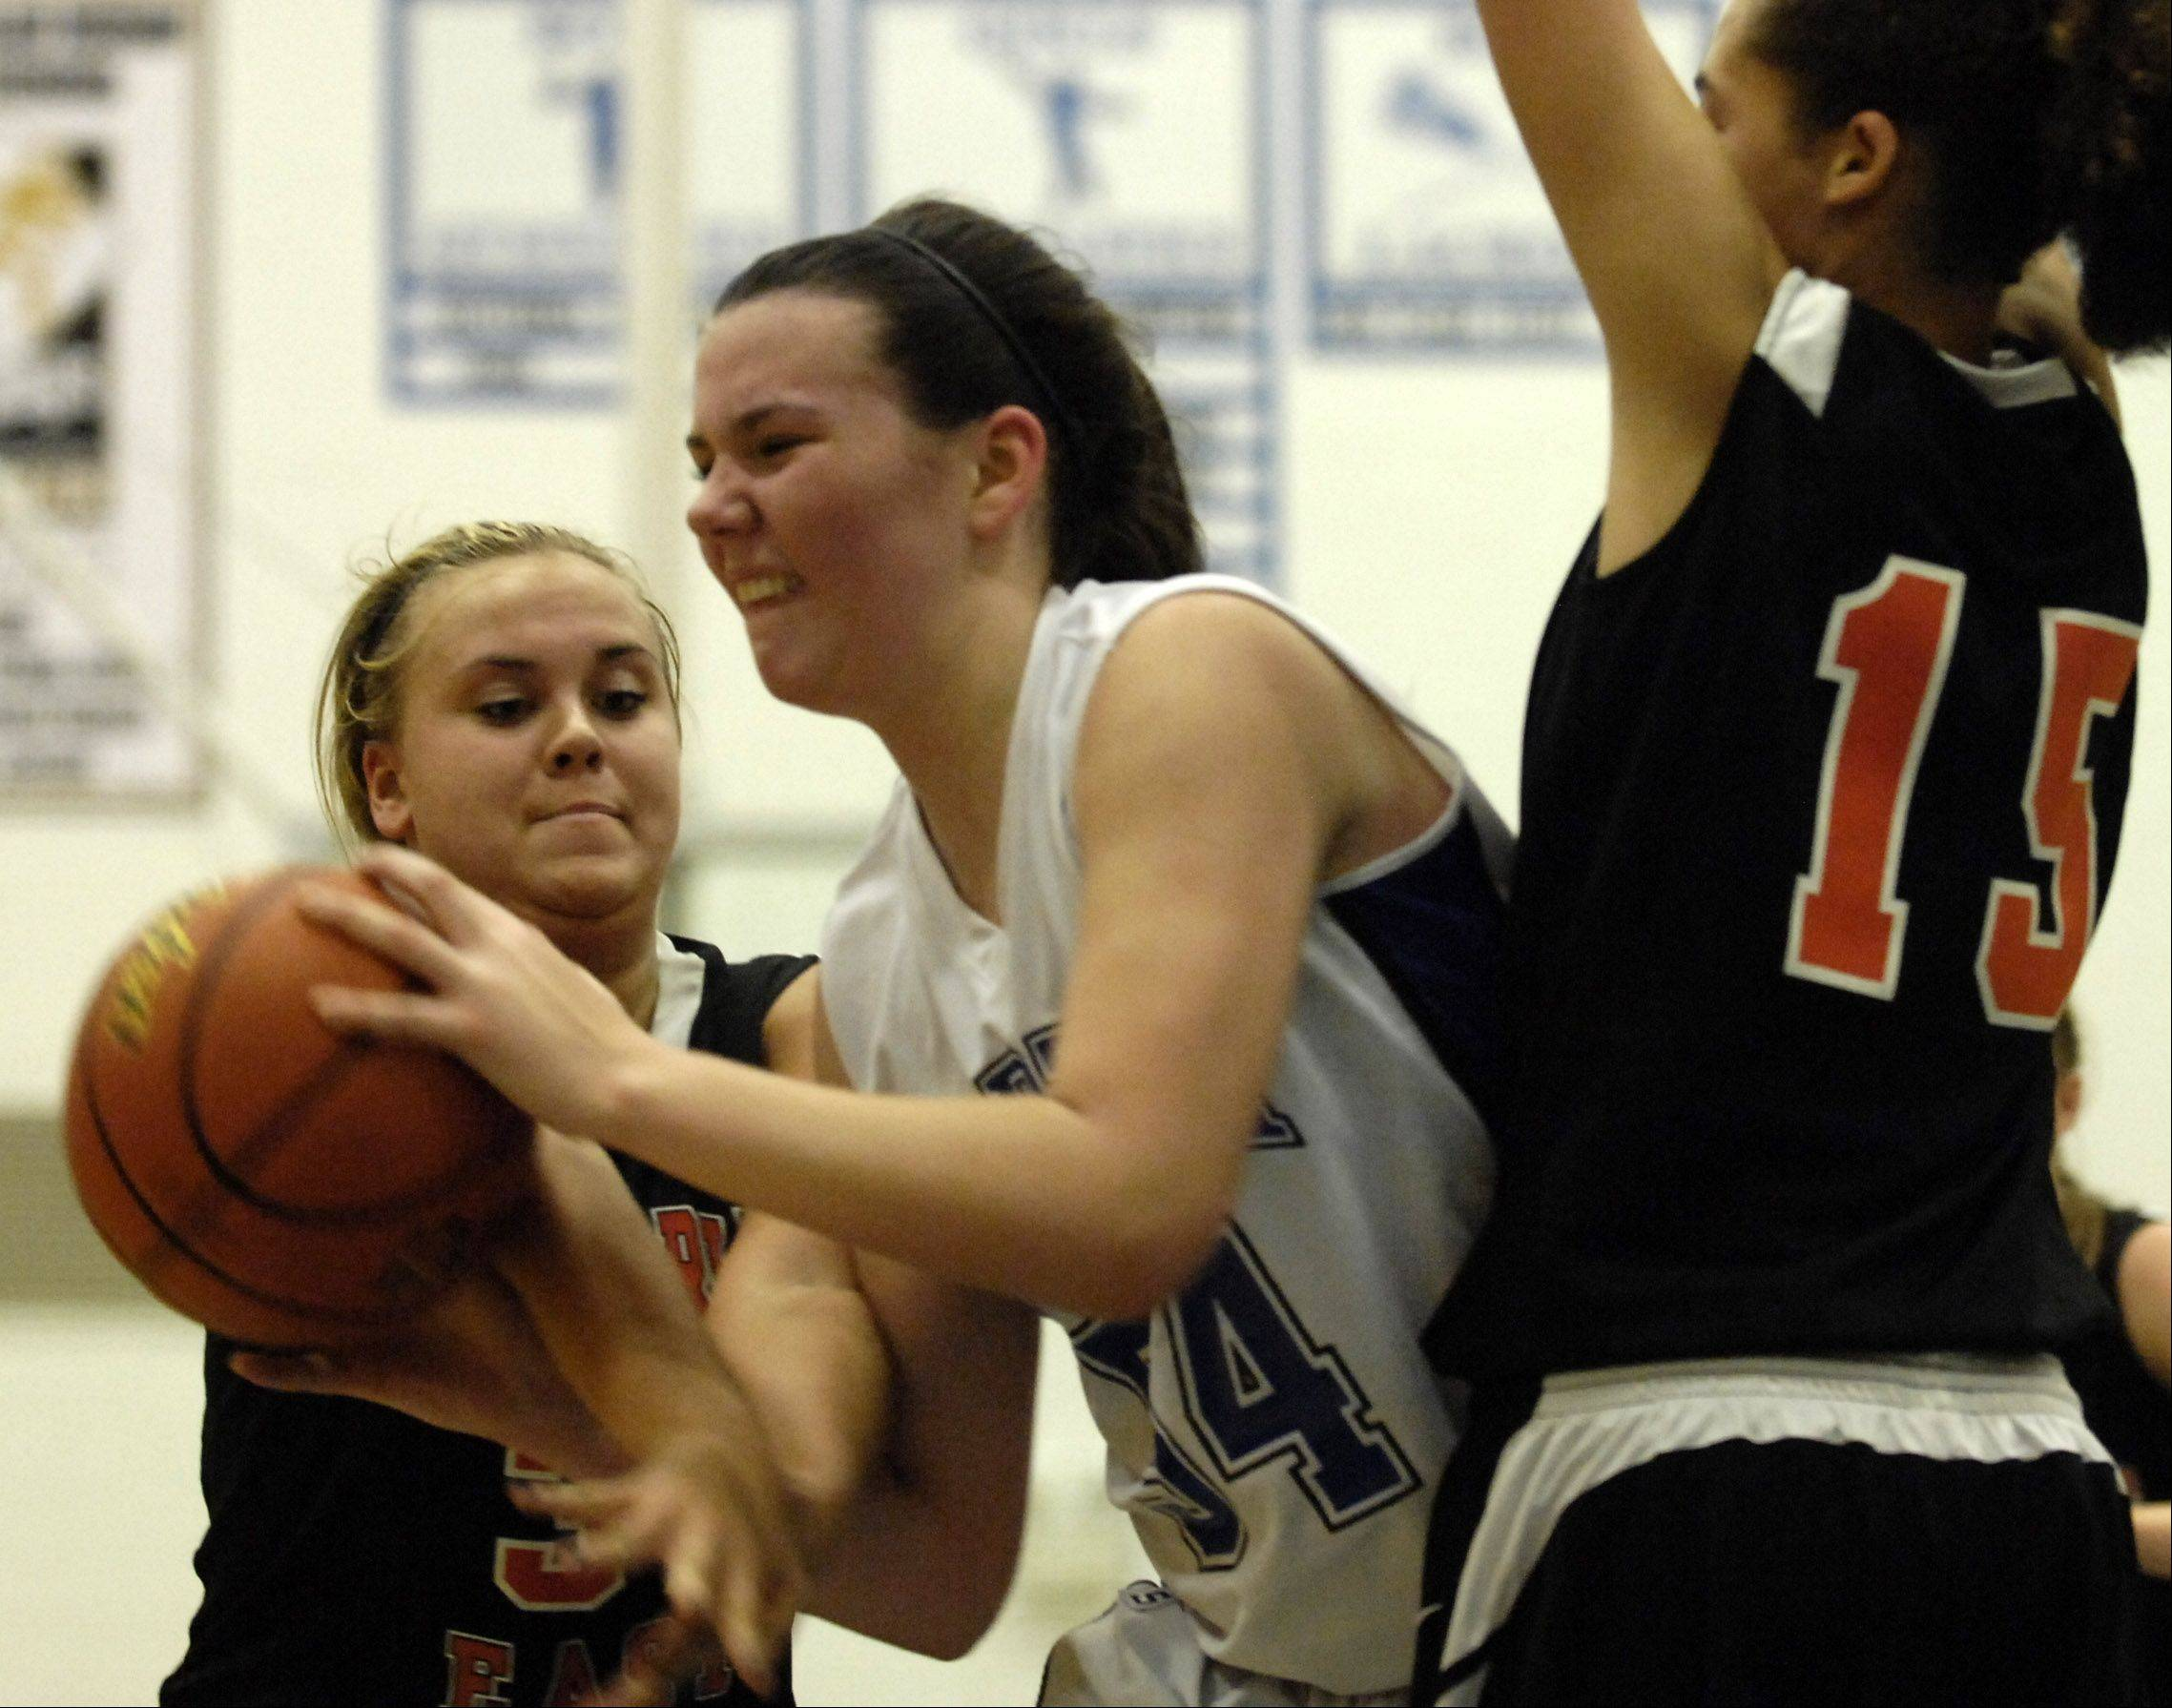 Images: St. Charles East vs. St. Charles North girls basketball